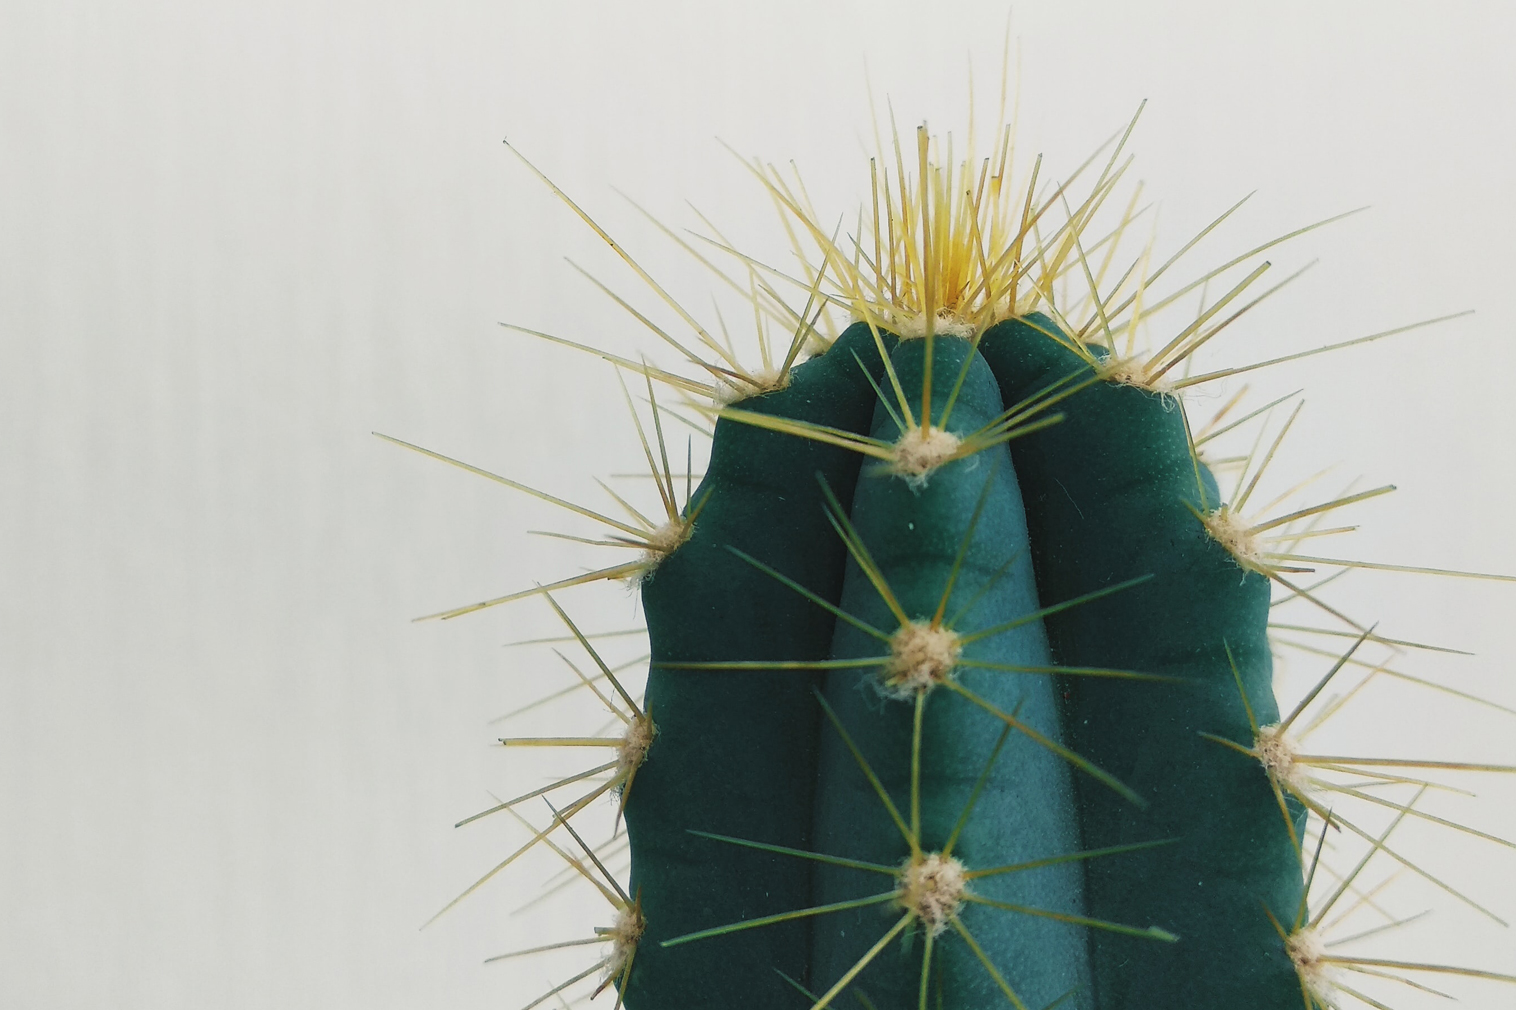 close up of cactus on gray background